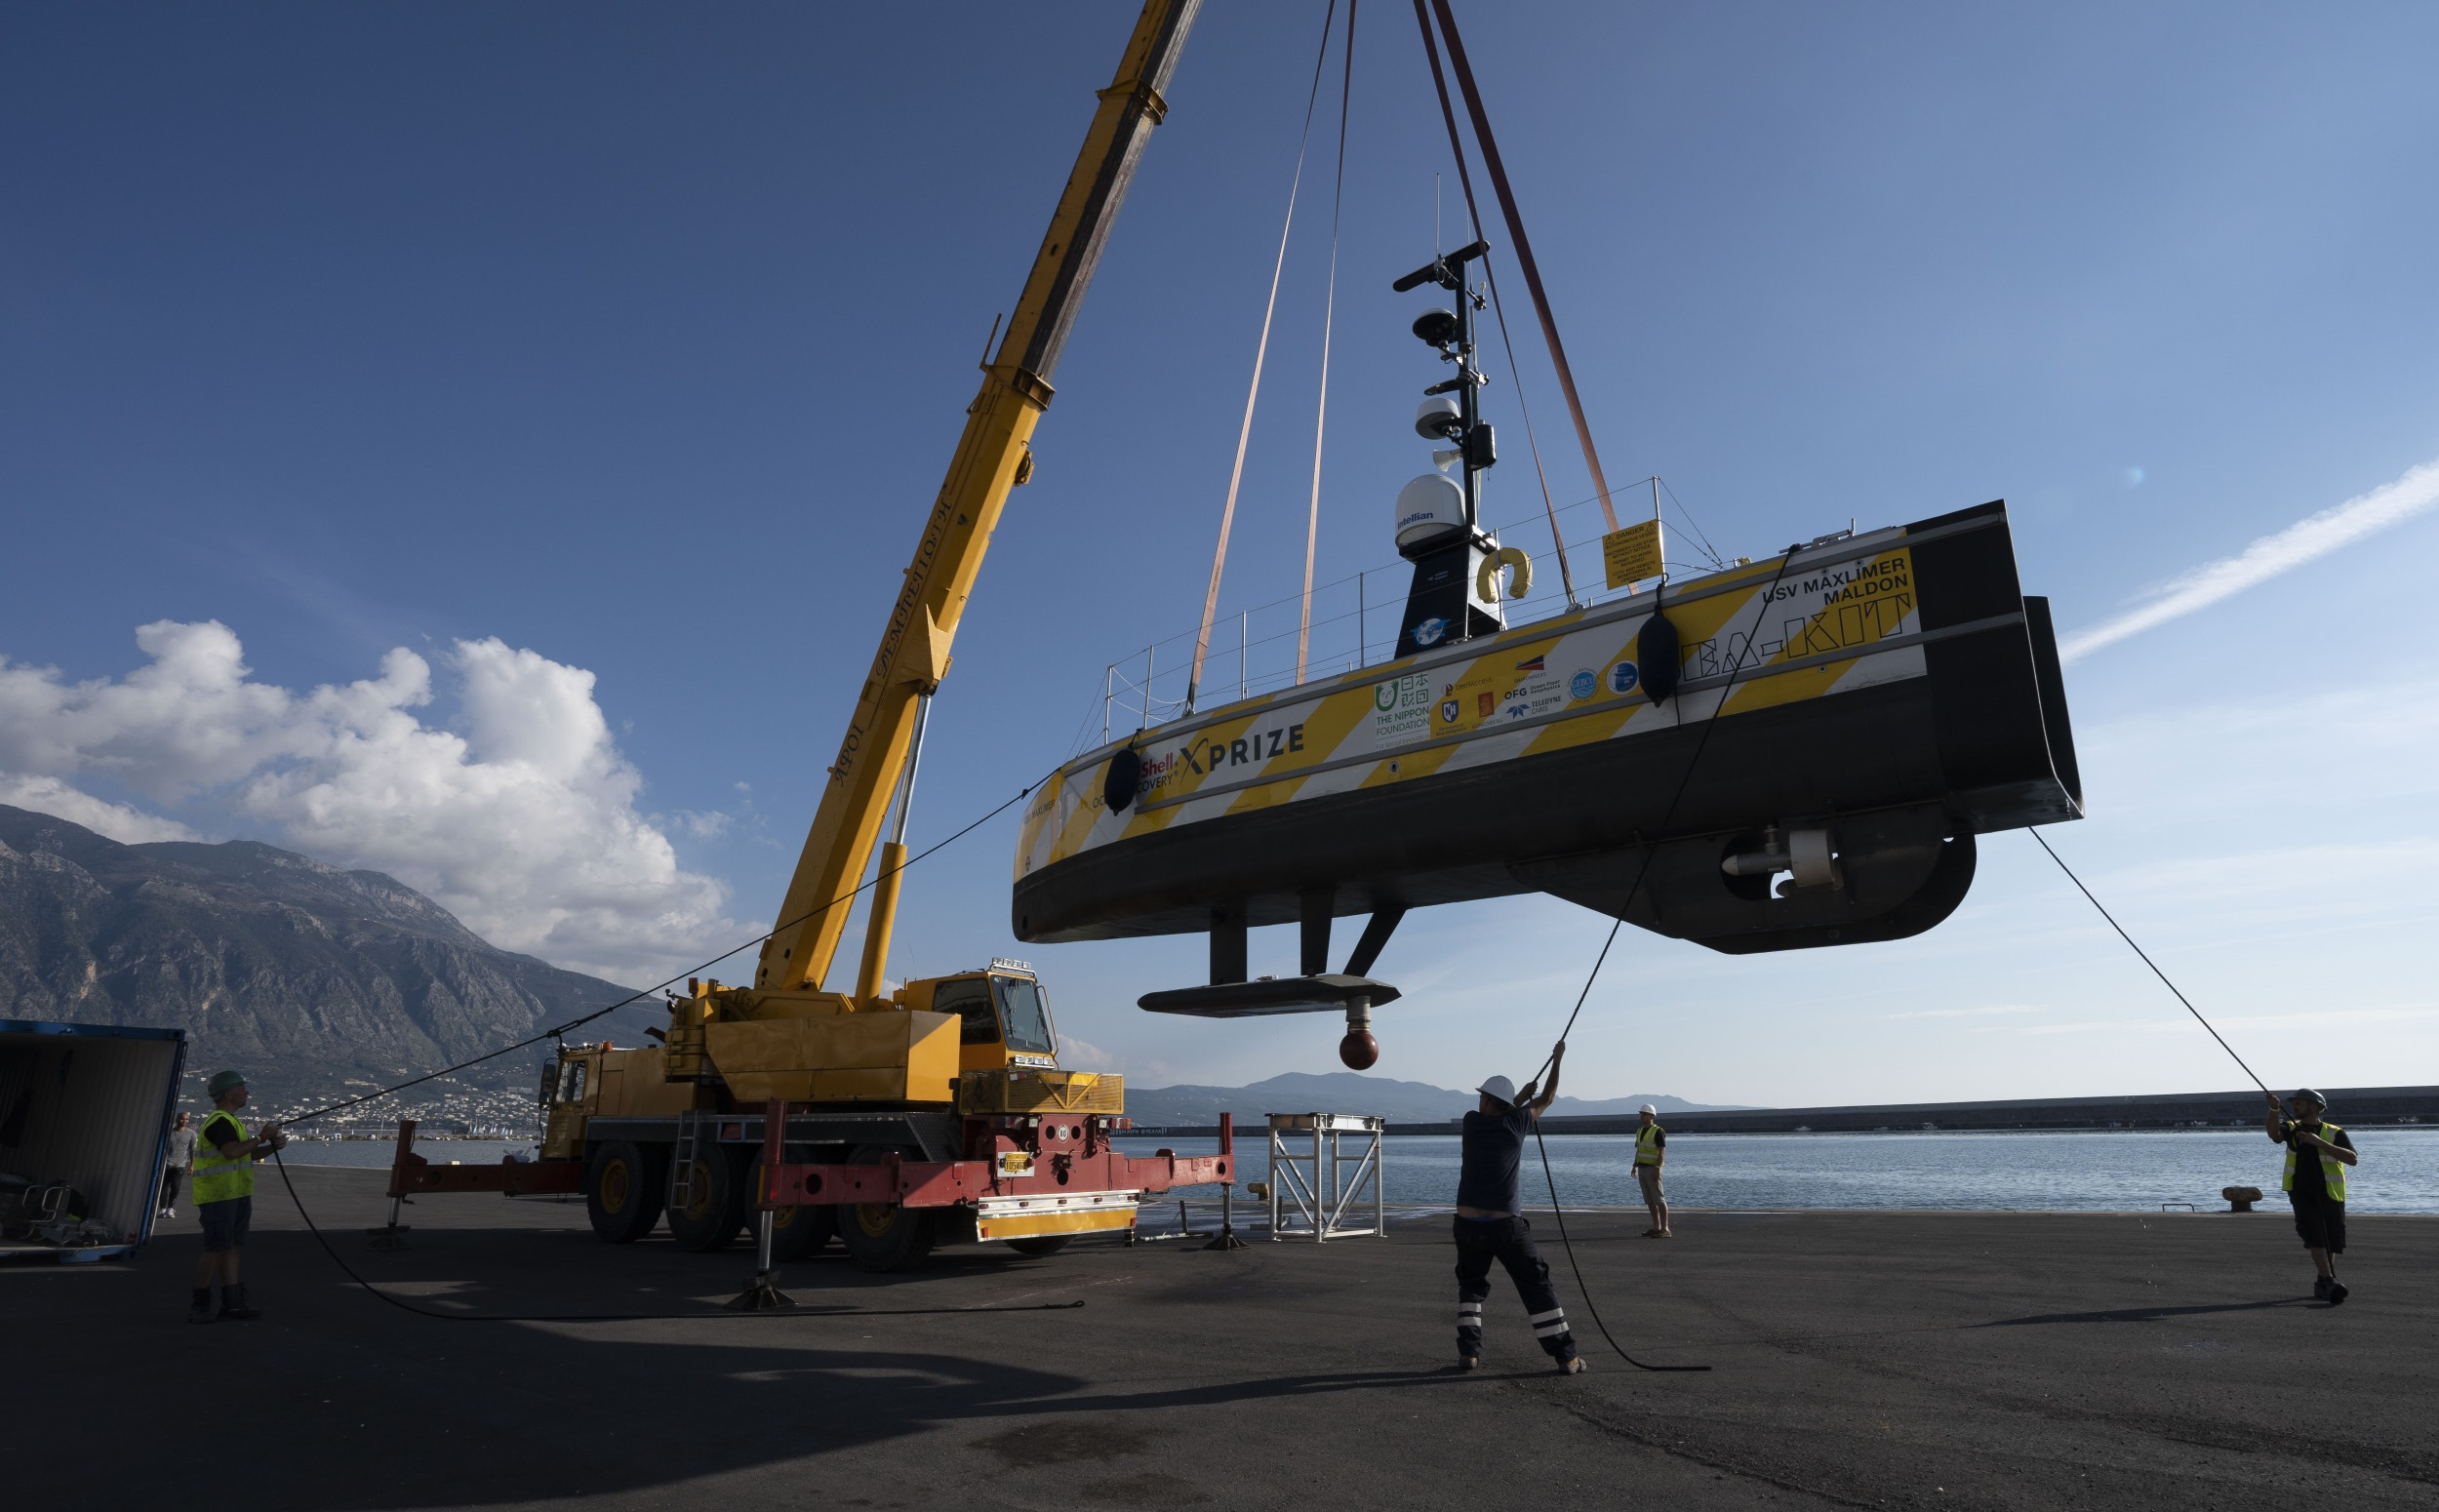 Teams autonomously mapping the depths take home millions in Ocean Discovery Xprize